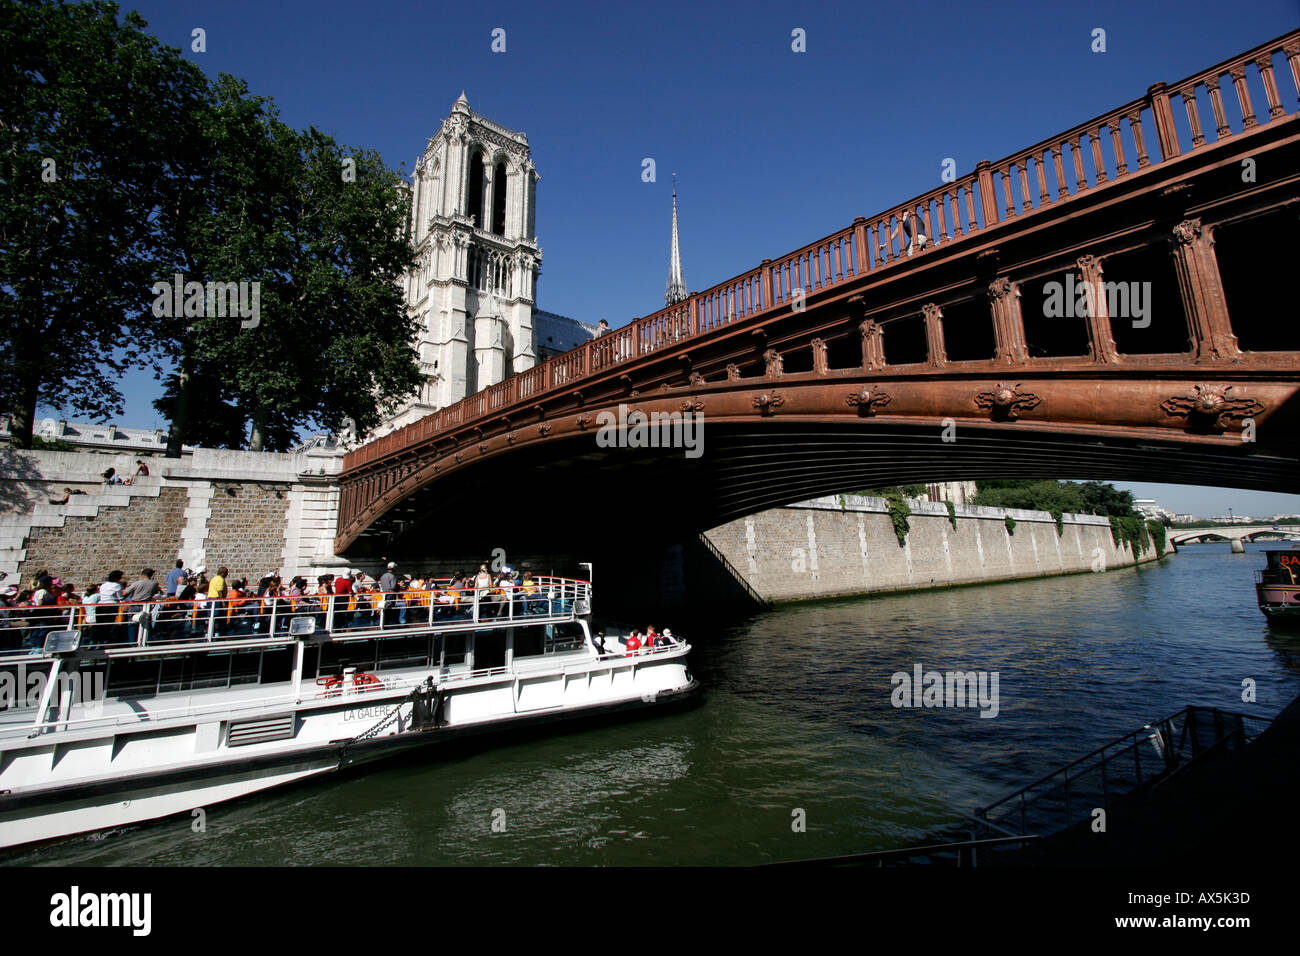 Tour boat under Pont au Double bridge over River Seine with Notre Dame Cathedral in the background Paris, France - Stock Image